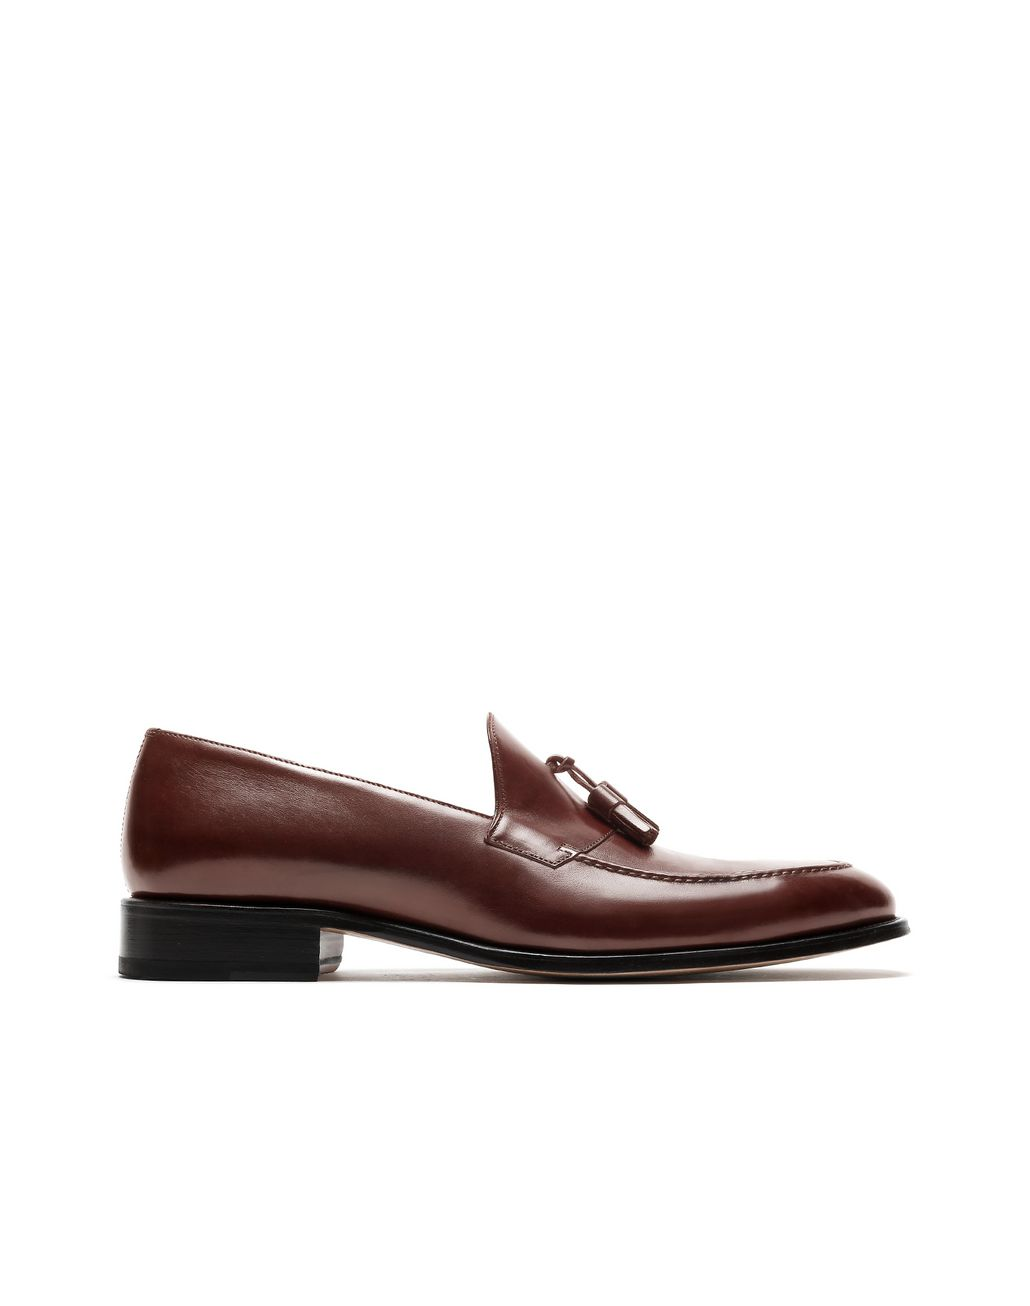 BRIONI Mocassini Marroni con Nappe Mocassino [*** pickupInStoreShippingNotGuaranteed_info ***] f